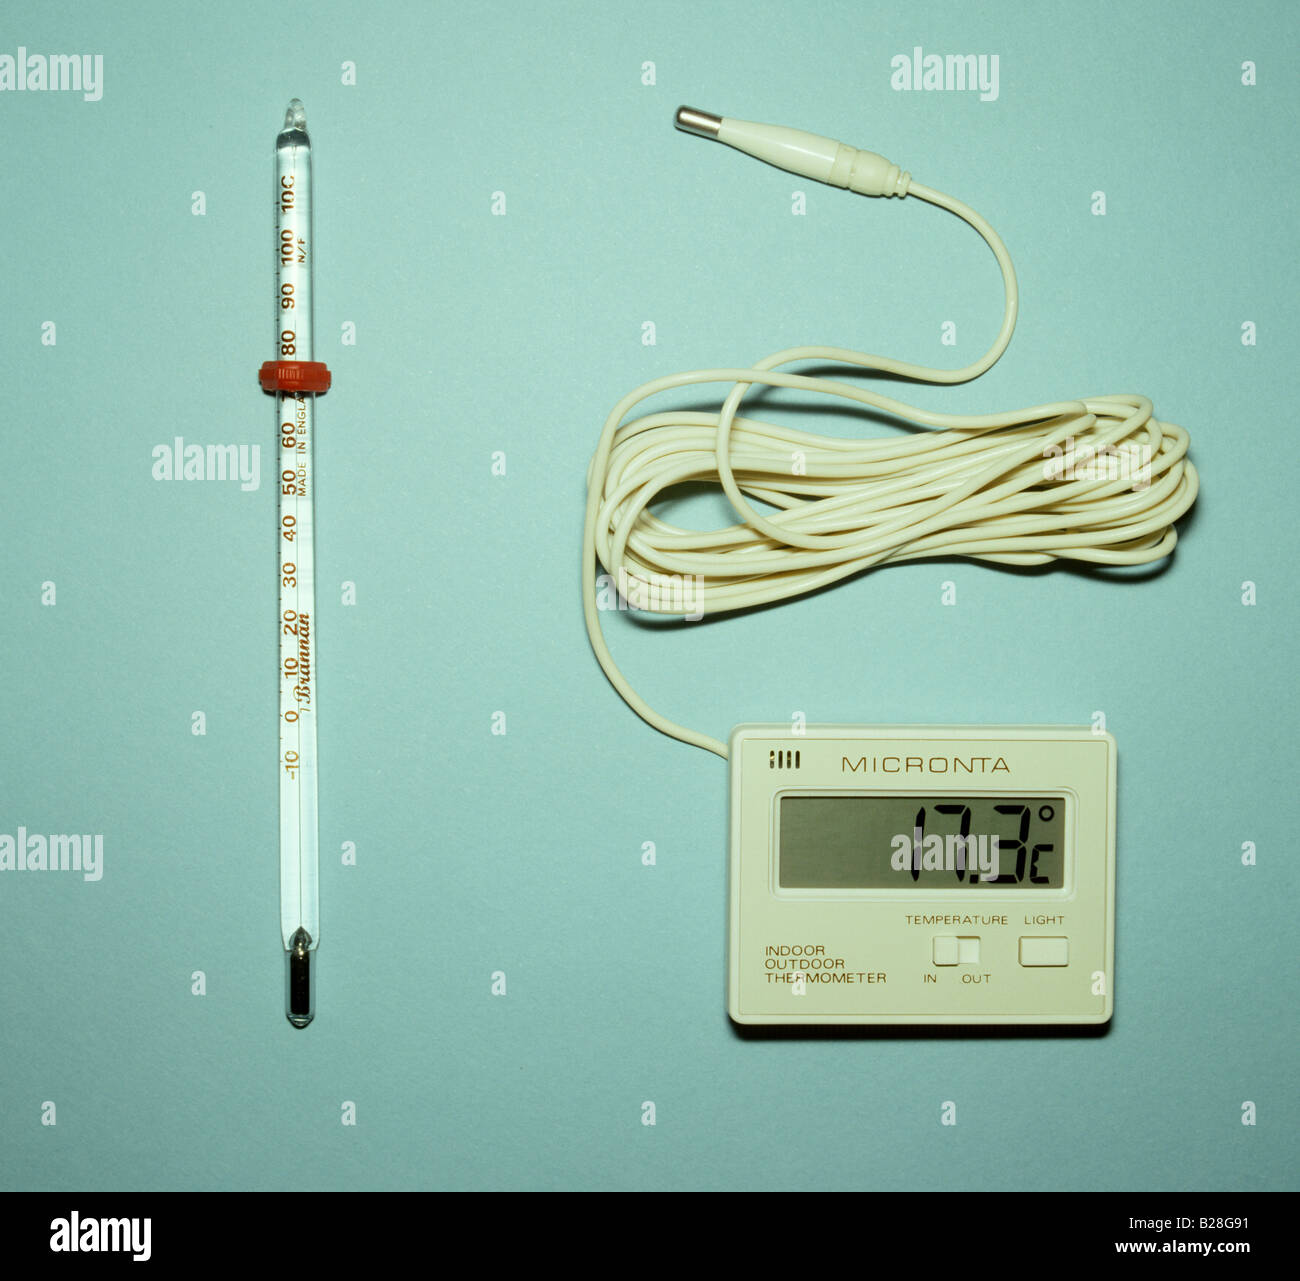 a digital thermometer beside a mercury in glass thermometer stock Electric Mixing Valve a digital thermometer beside a mercury in glass thermometer